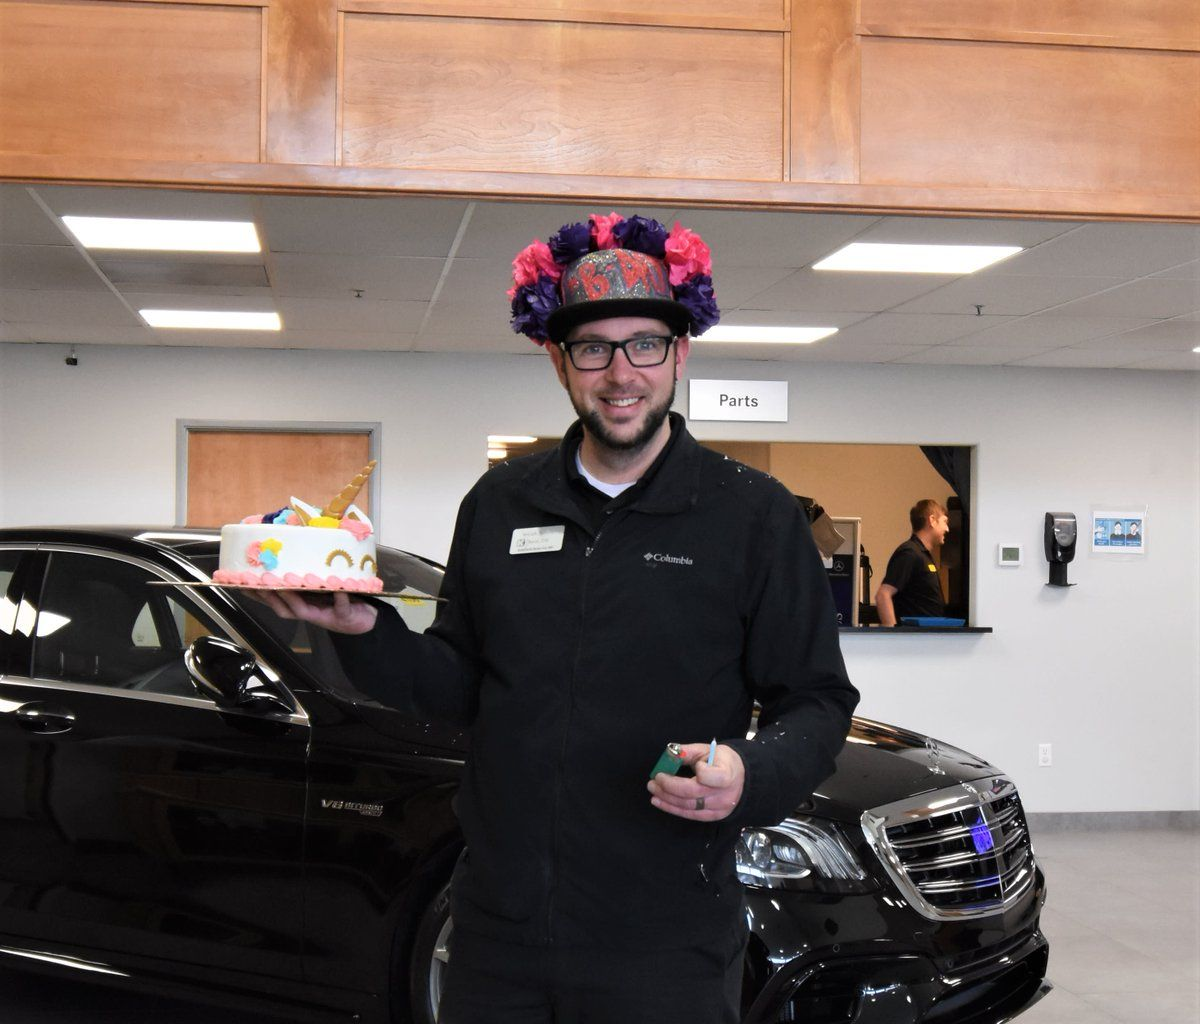 Happy Birthday Micah Thank You For All Your Hard Work Https T Co Mubltlnzkn New Mercedes Mercedes Benz Car Dealership